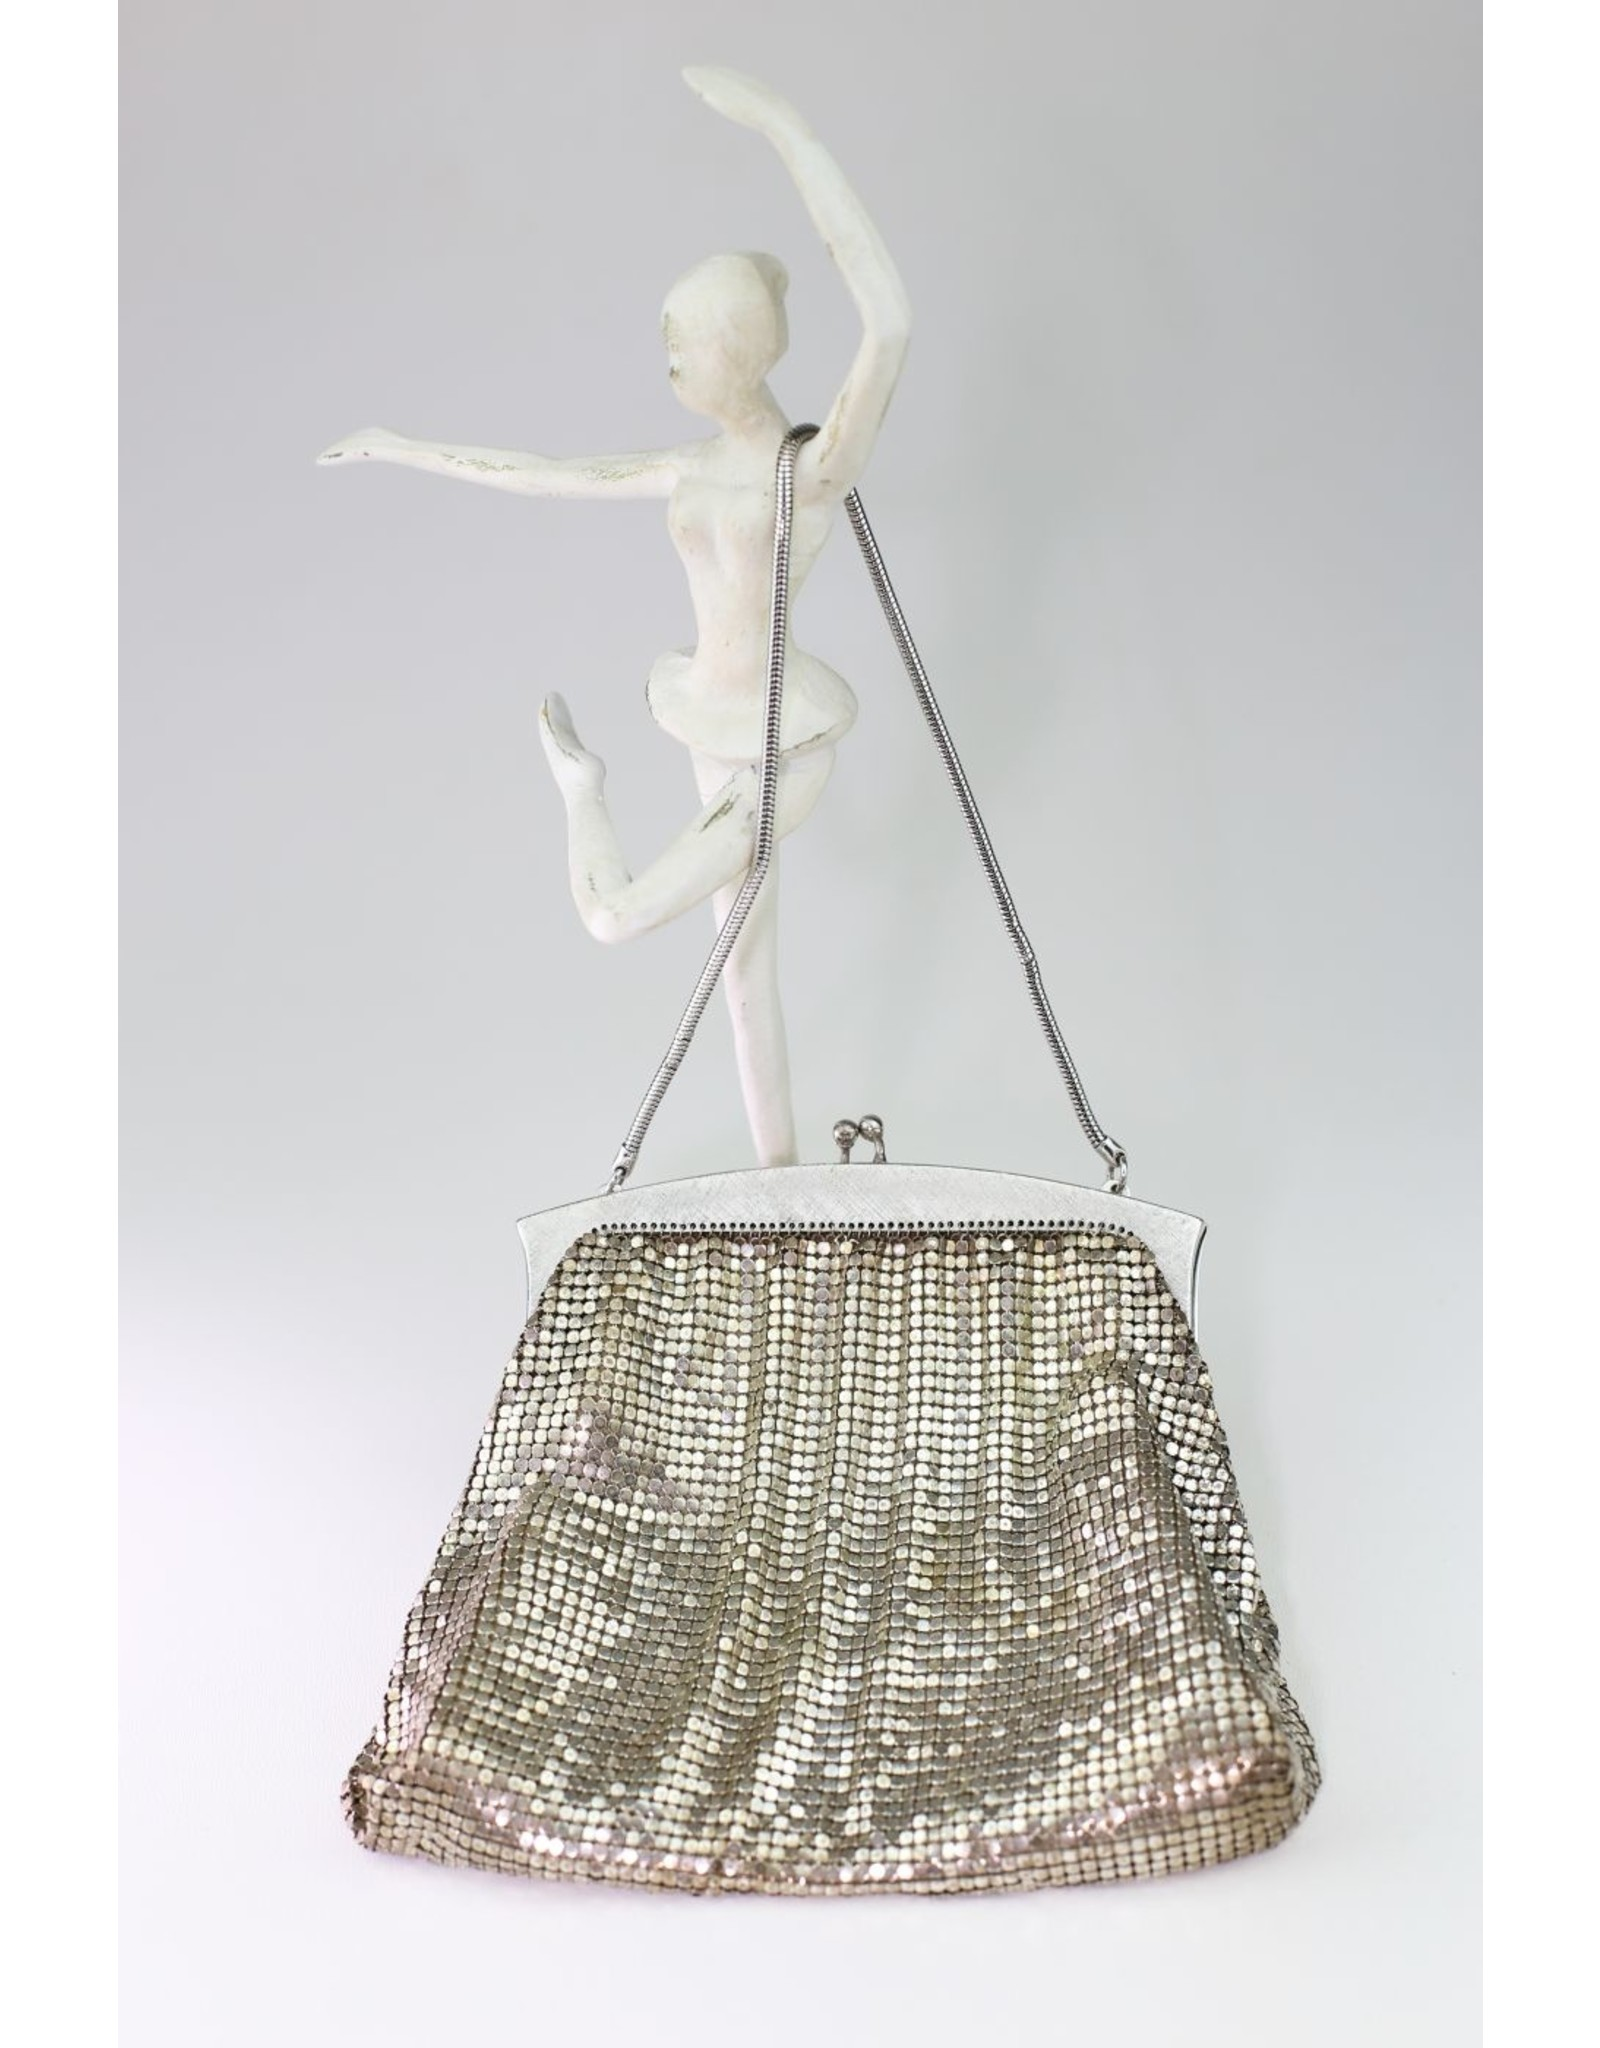 1960's Whiting and Davis Mesh Silver Handbag